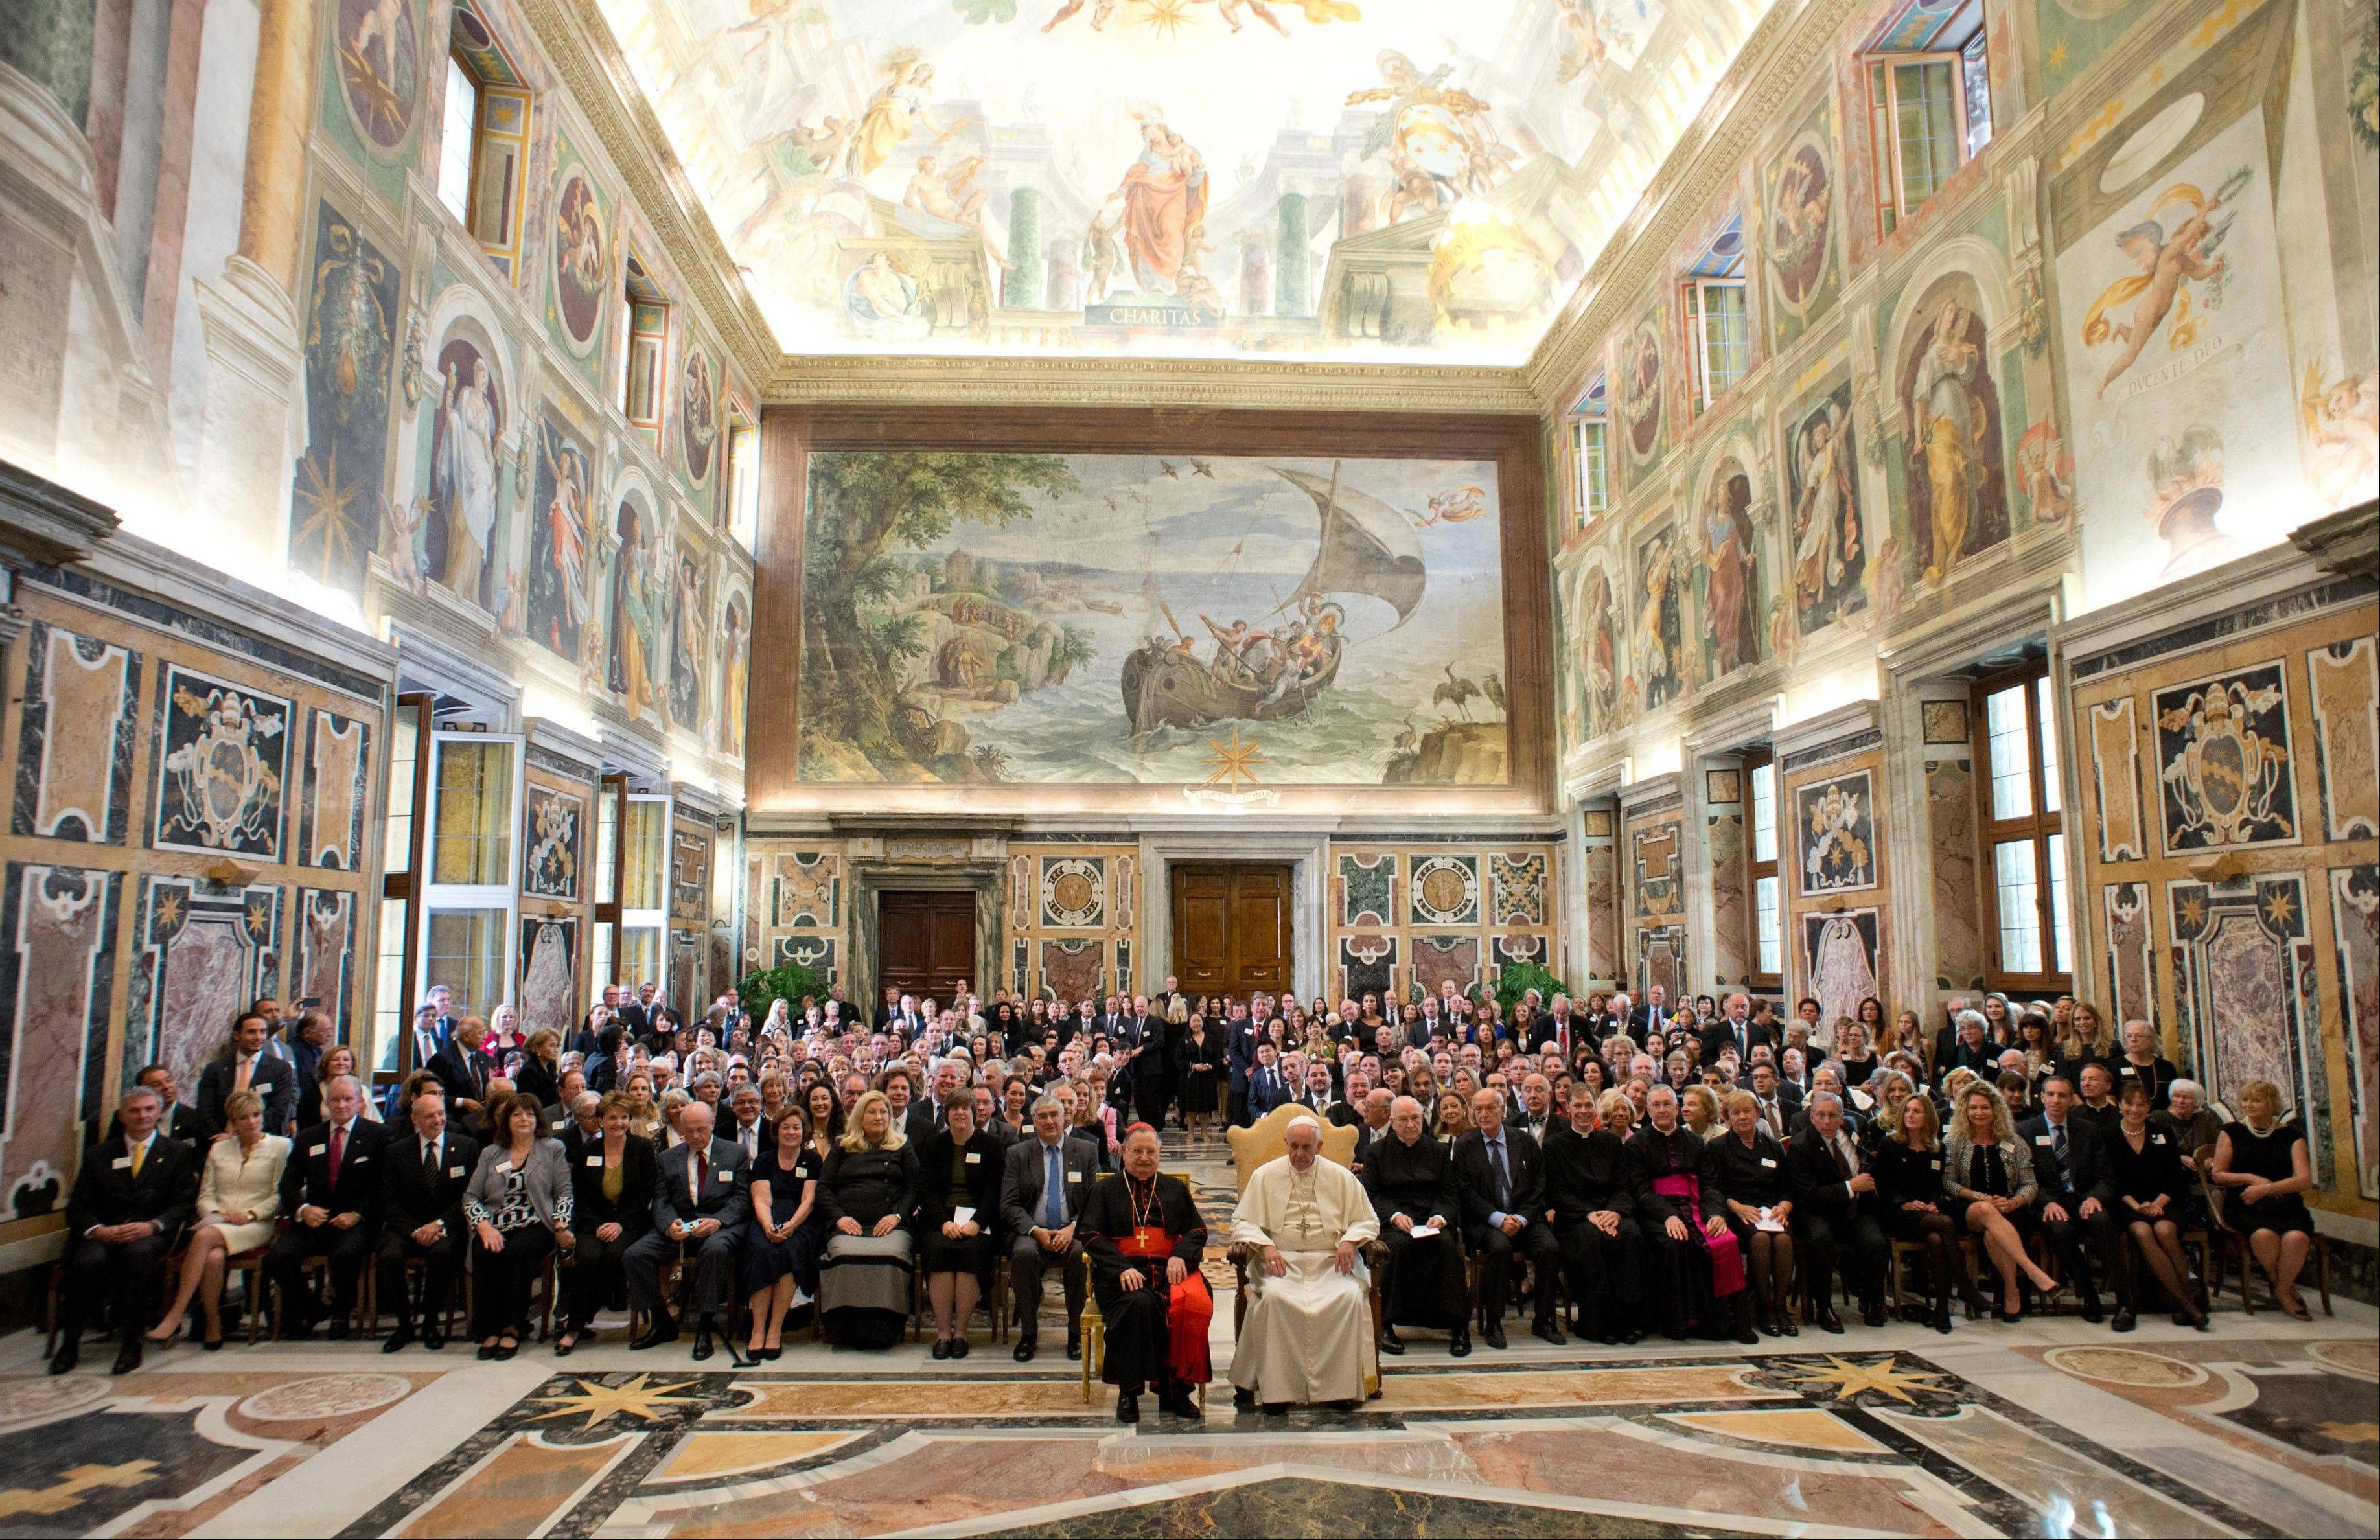 Pope Francis, in white at front, with the Patrons of the Arts of the Vatican Museum, a fundraising organization for restoring the Vatican's artistic treasures, on the occasion of their audience, at the Clementine Hall, at the Vatican.